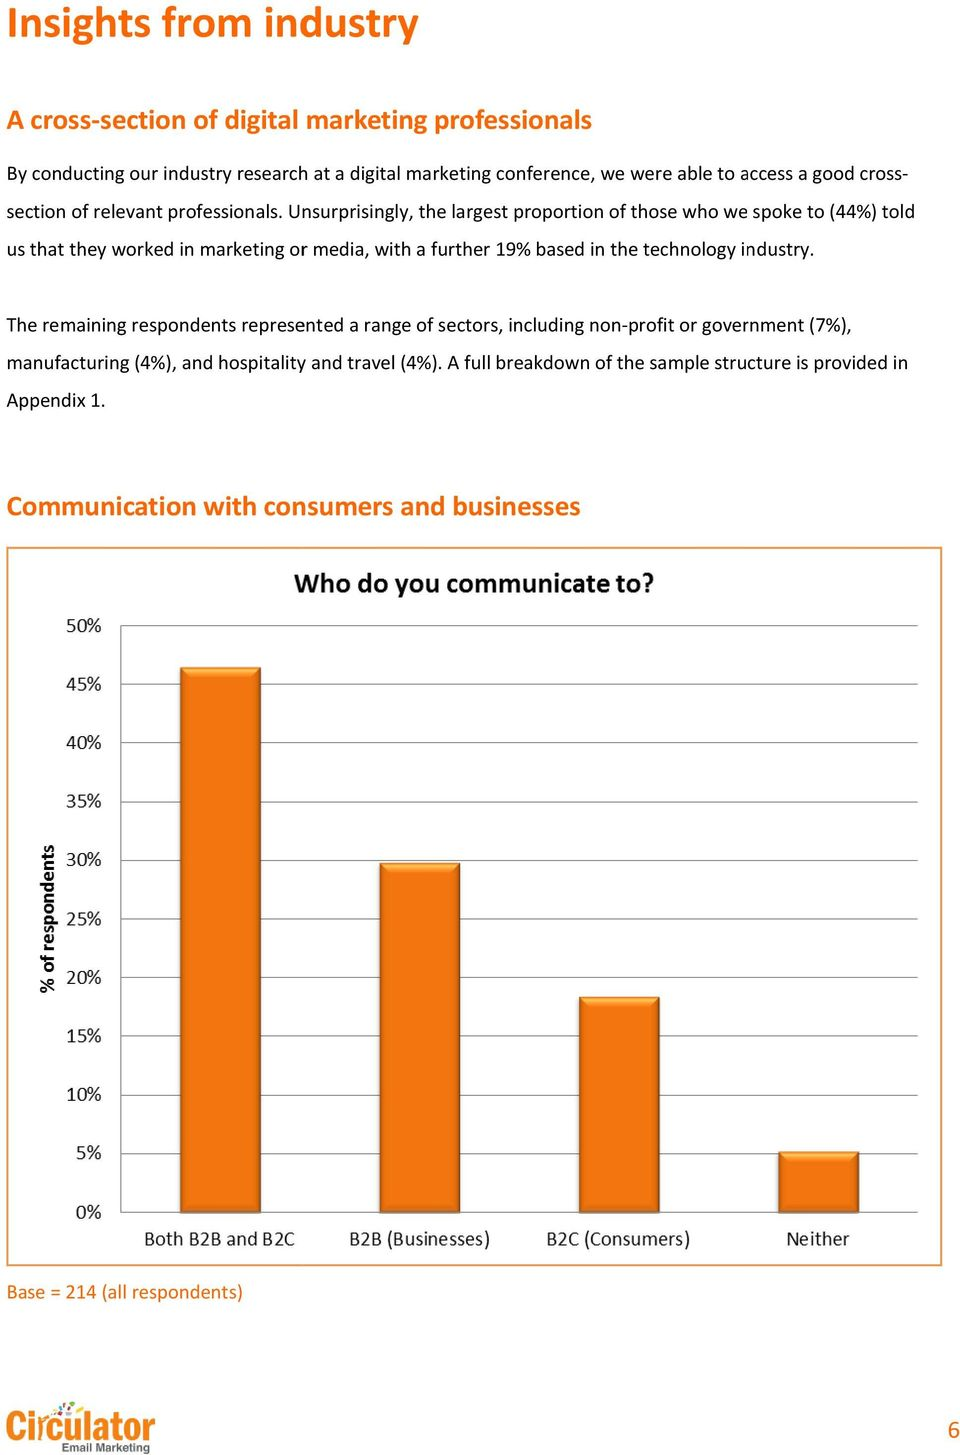 Unsurprisingly, the largest proportion of those who we spoke to (44%) told us that they worked in marketing or media, with a further 19% based in the technology industry.